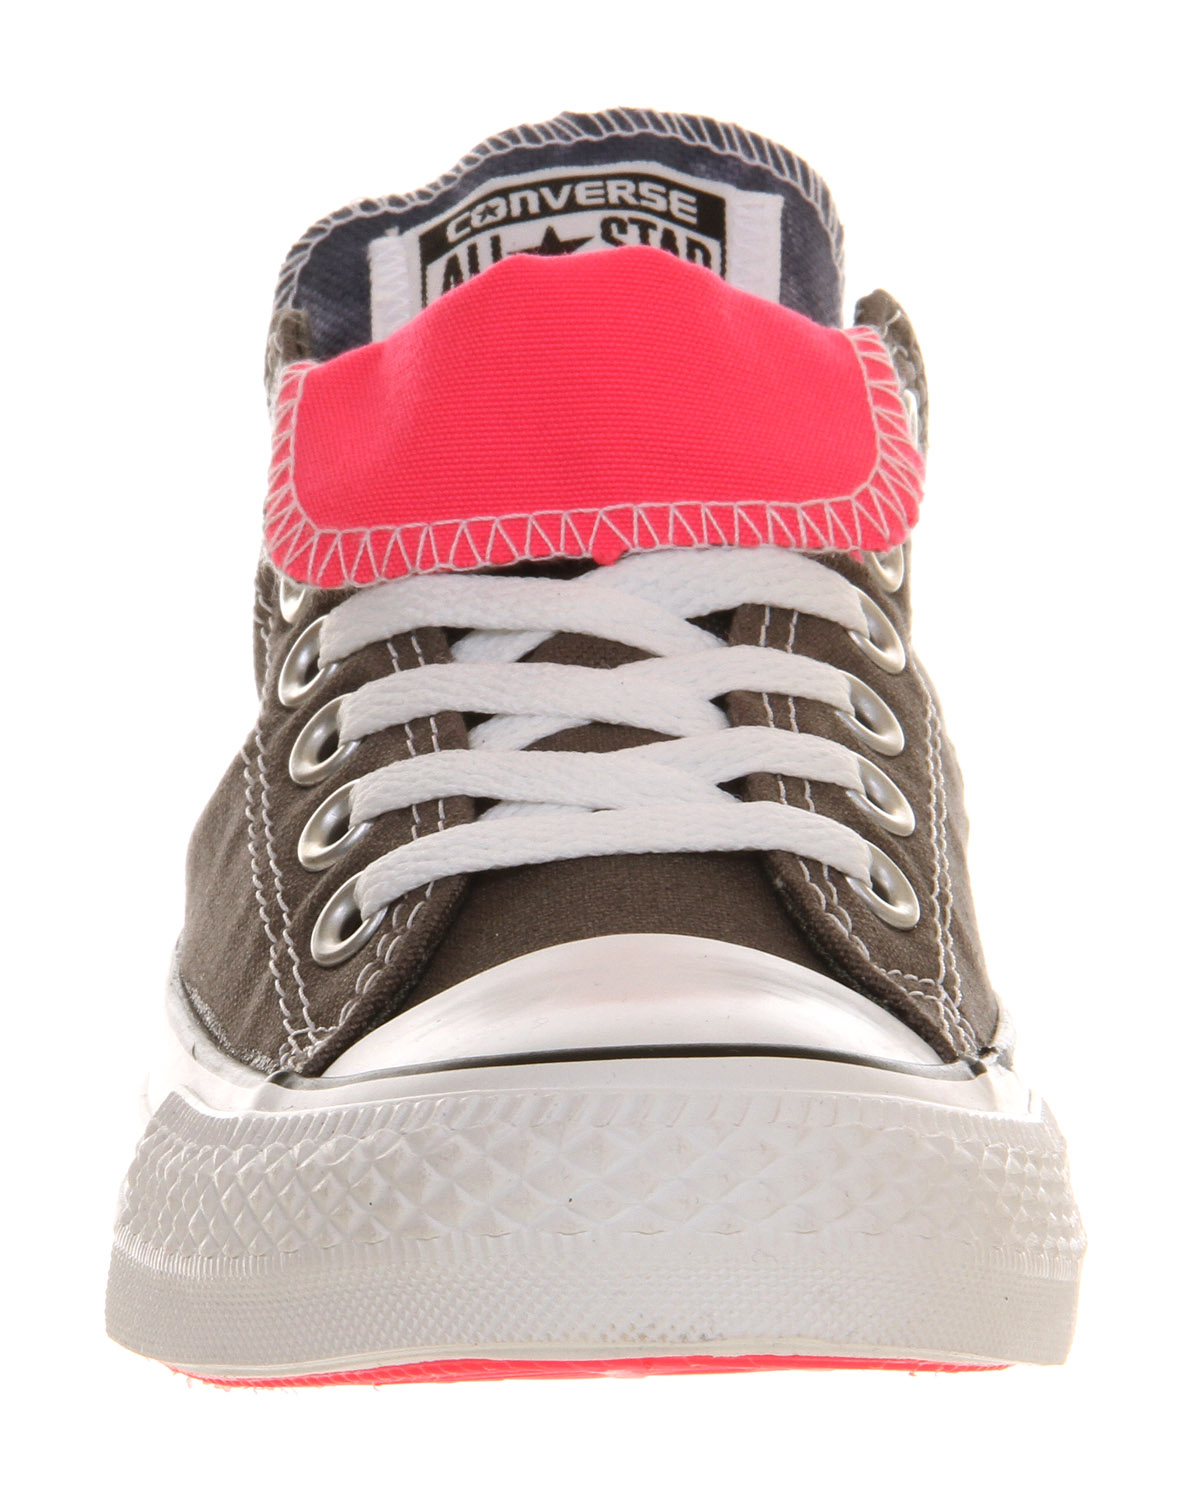 08ab291bcdbc6e Lyst - Converse Allstar Low Double Tongue in Gray